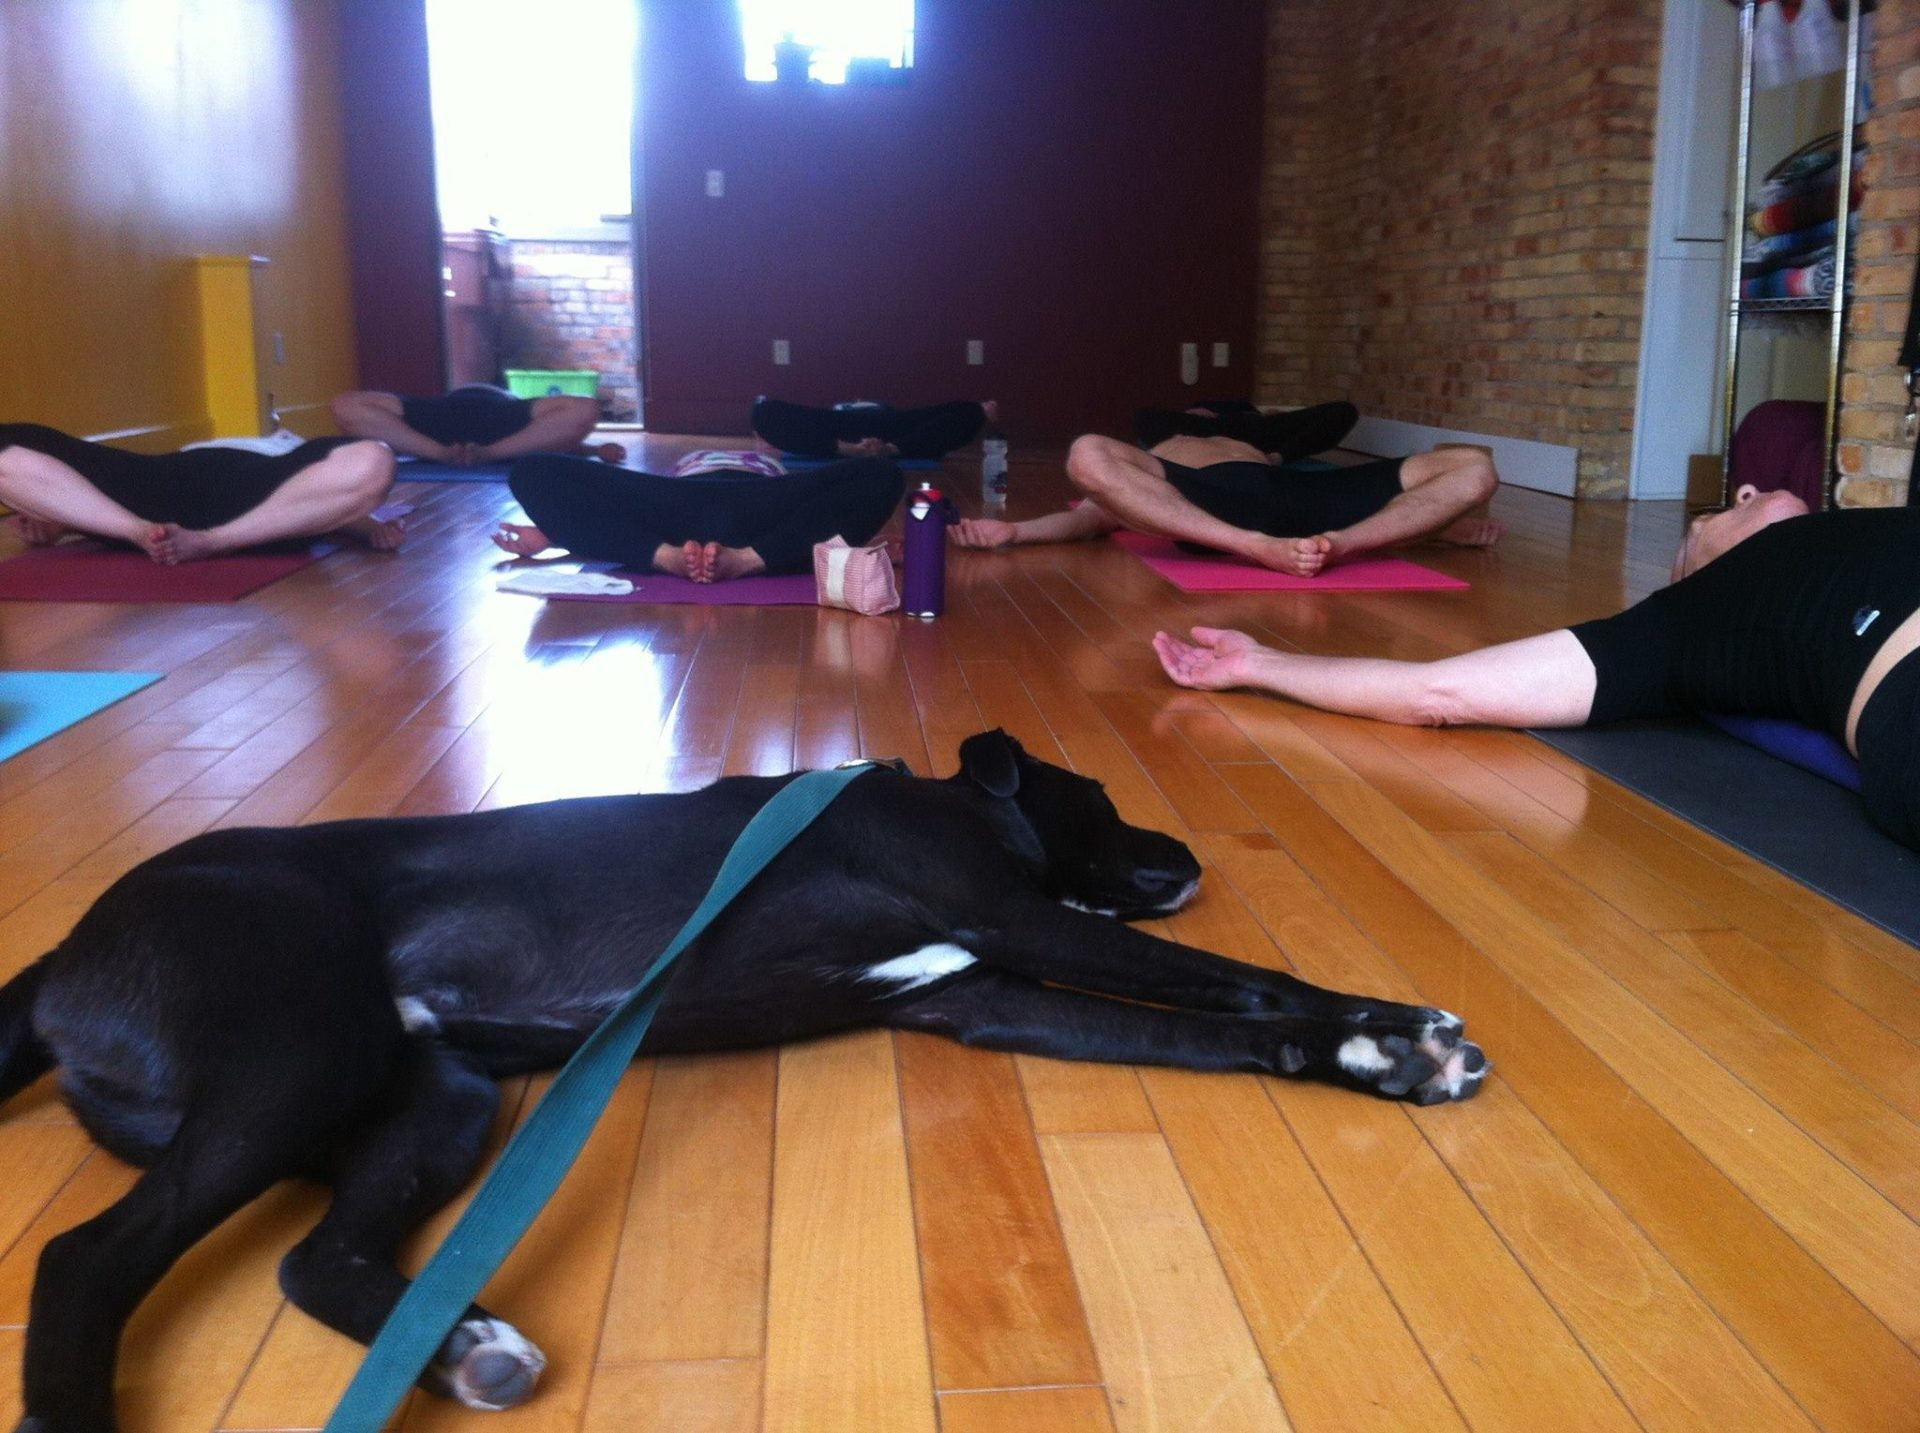 A wandering dog and a yoga journey